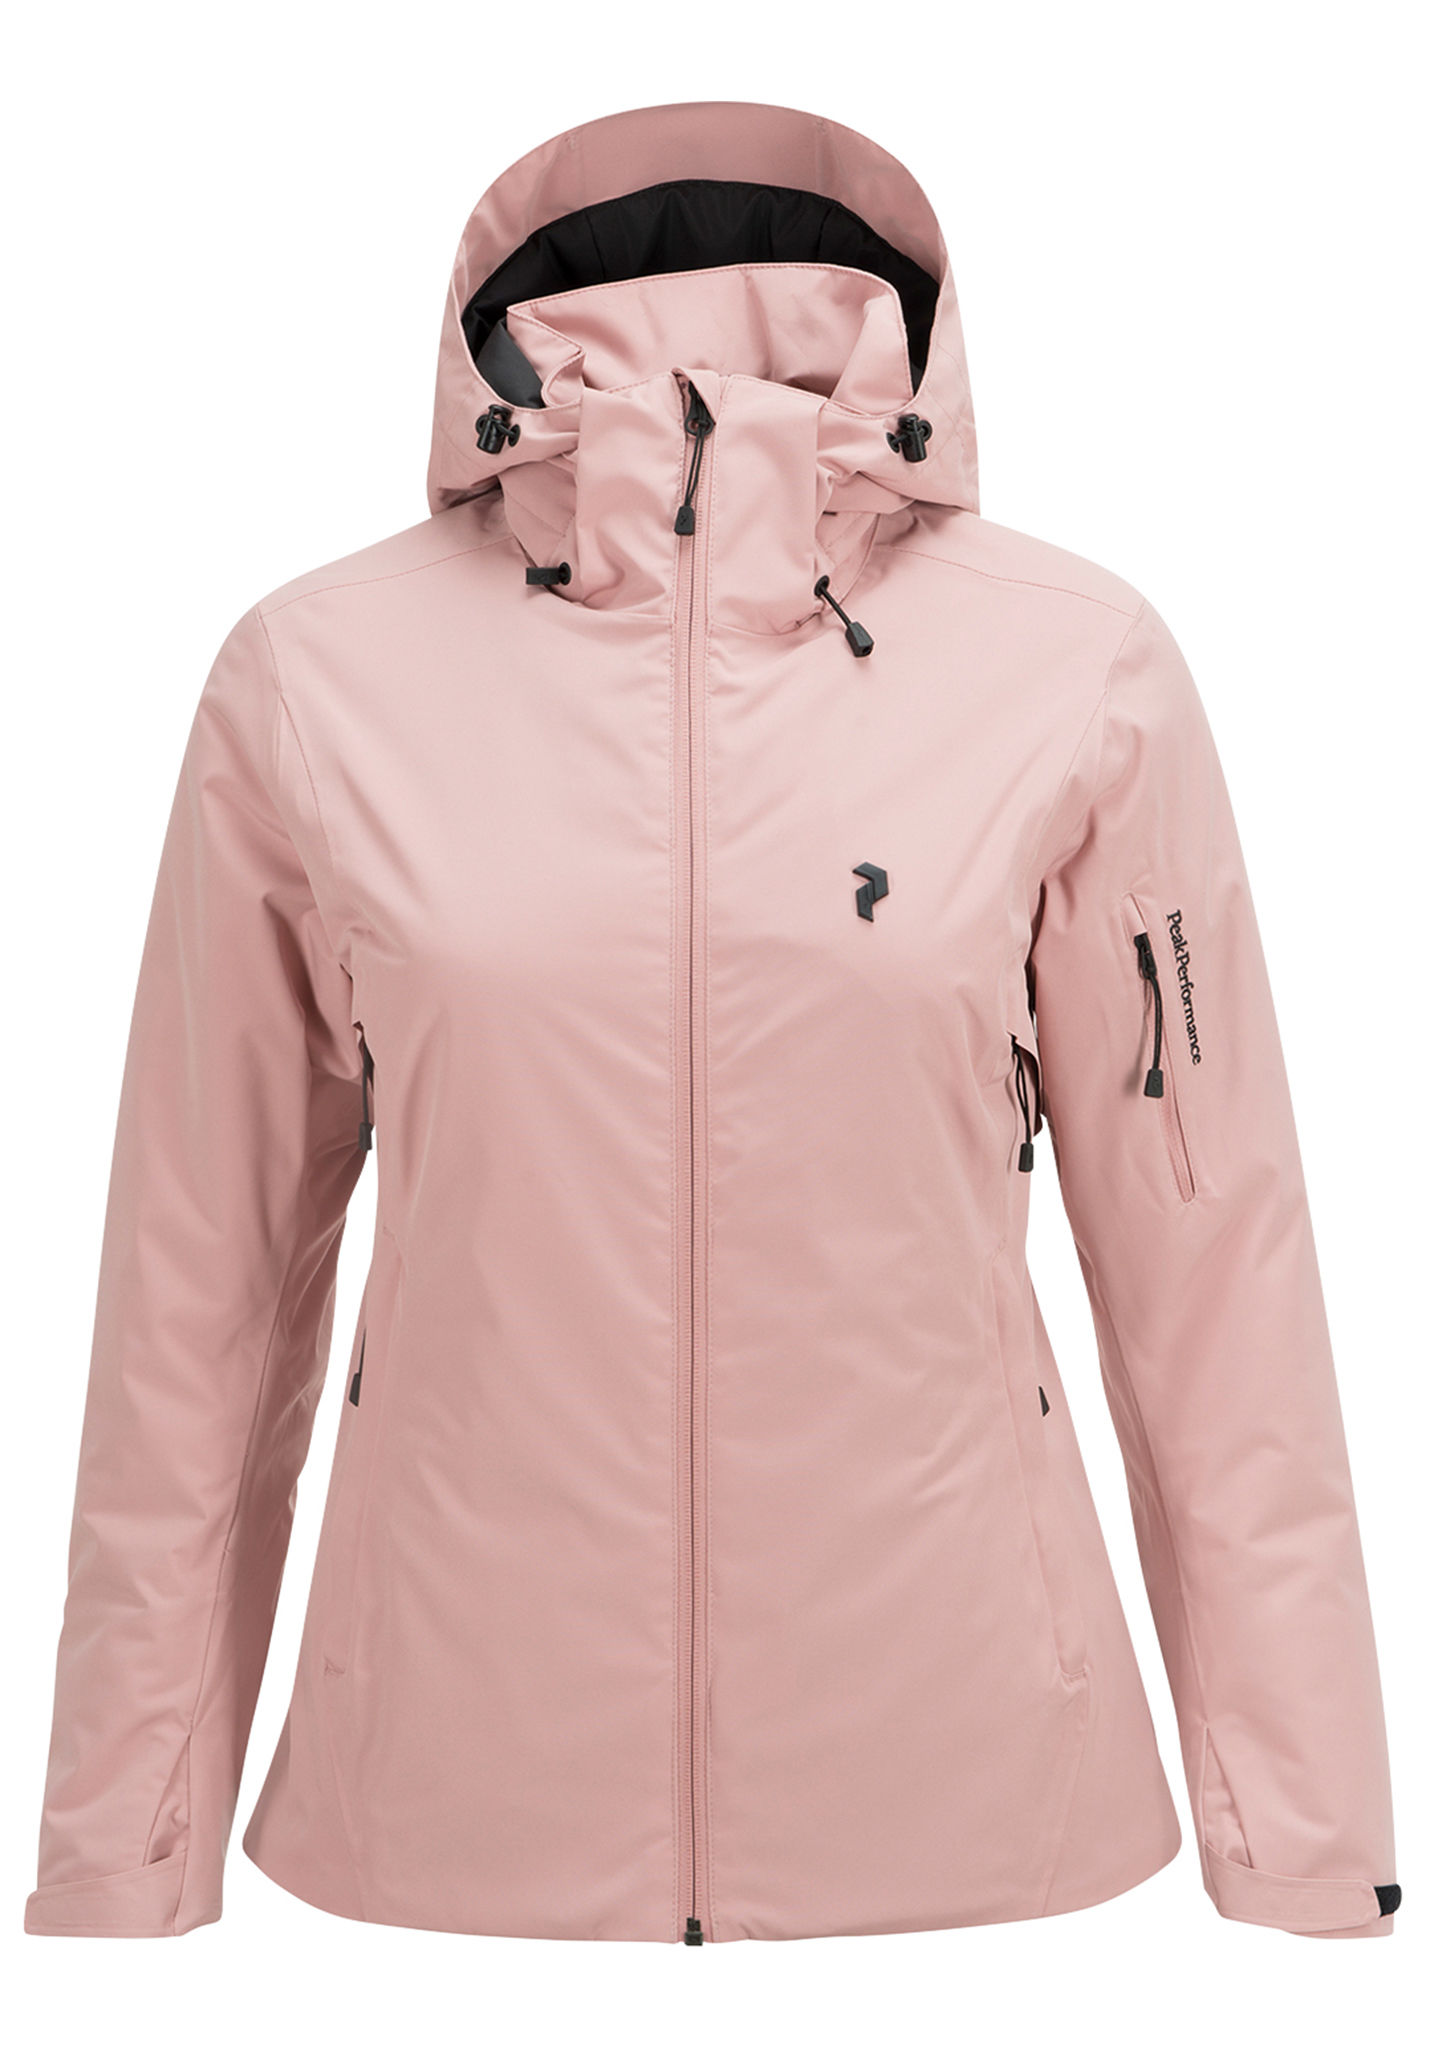 057b9dc807 PEAK PERFORMANCE Anima - Outdoor Jacket for Women - Pink - Planet Sports